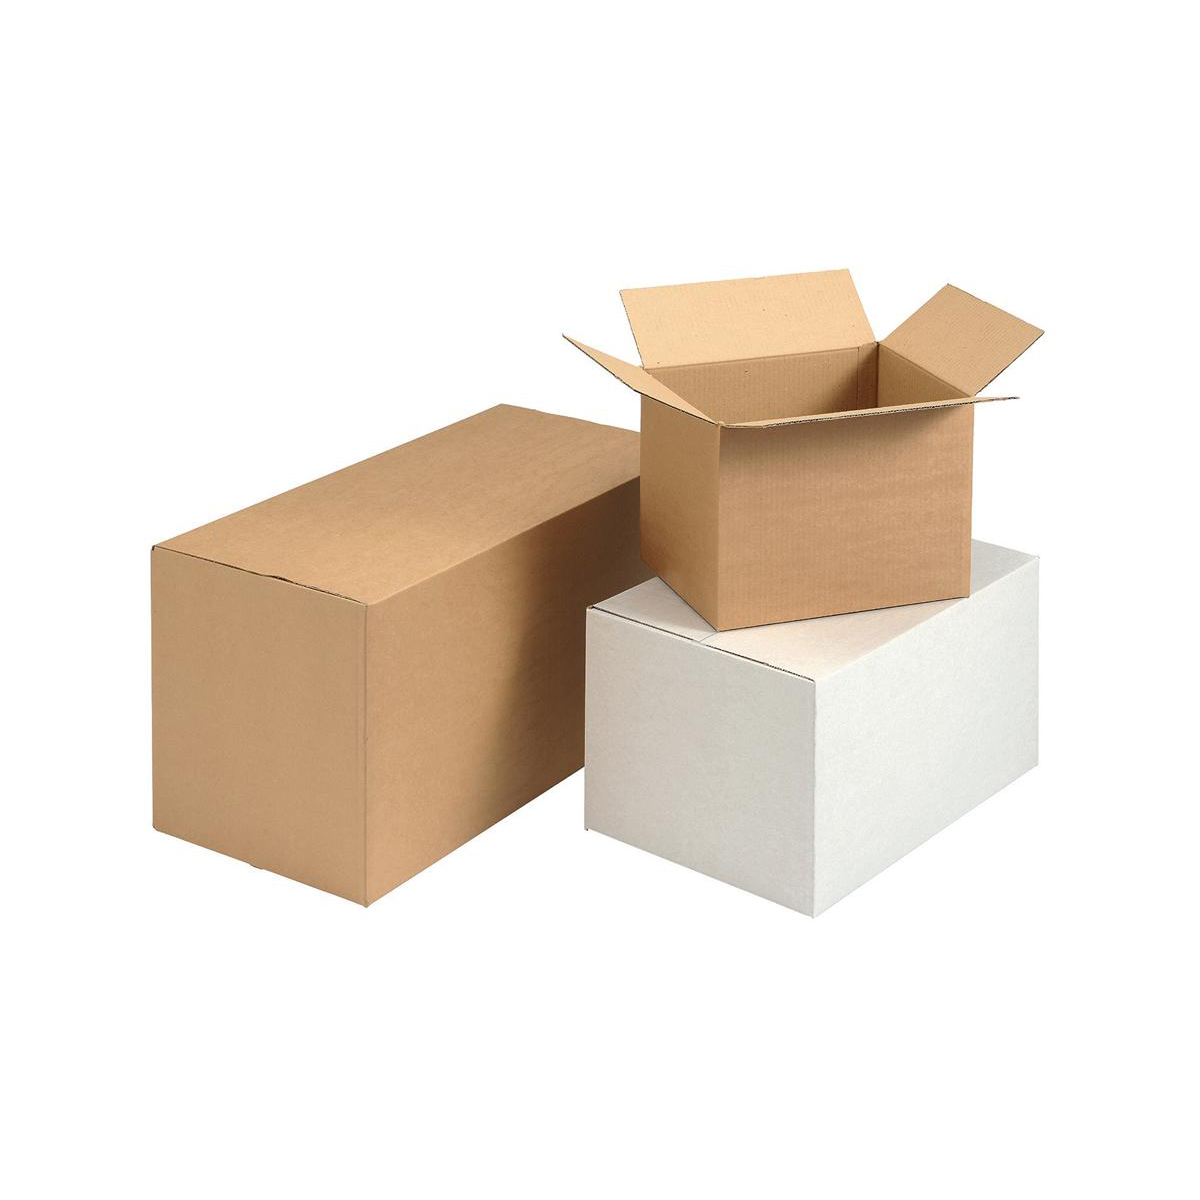 Packaging boxes Packing Carton Single Wall Strong Flat Packed W635xD305xH330mm Brown Pack 10